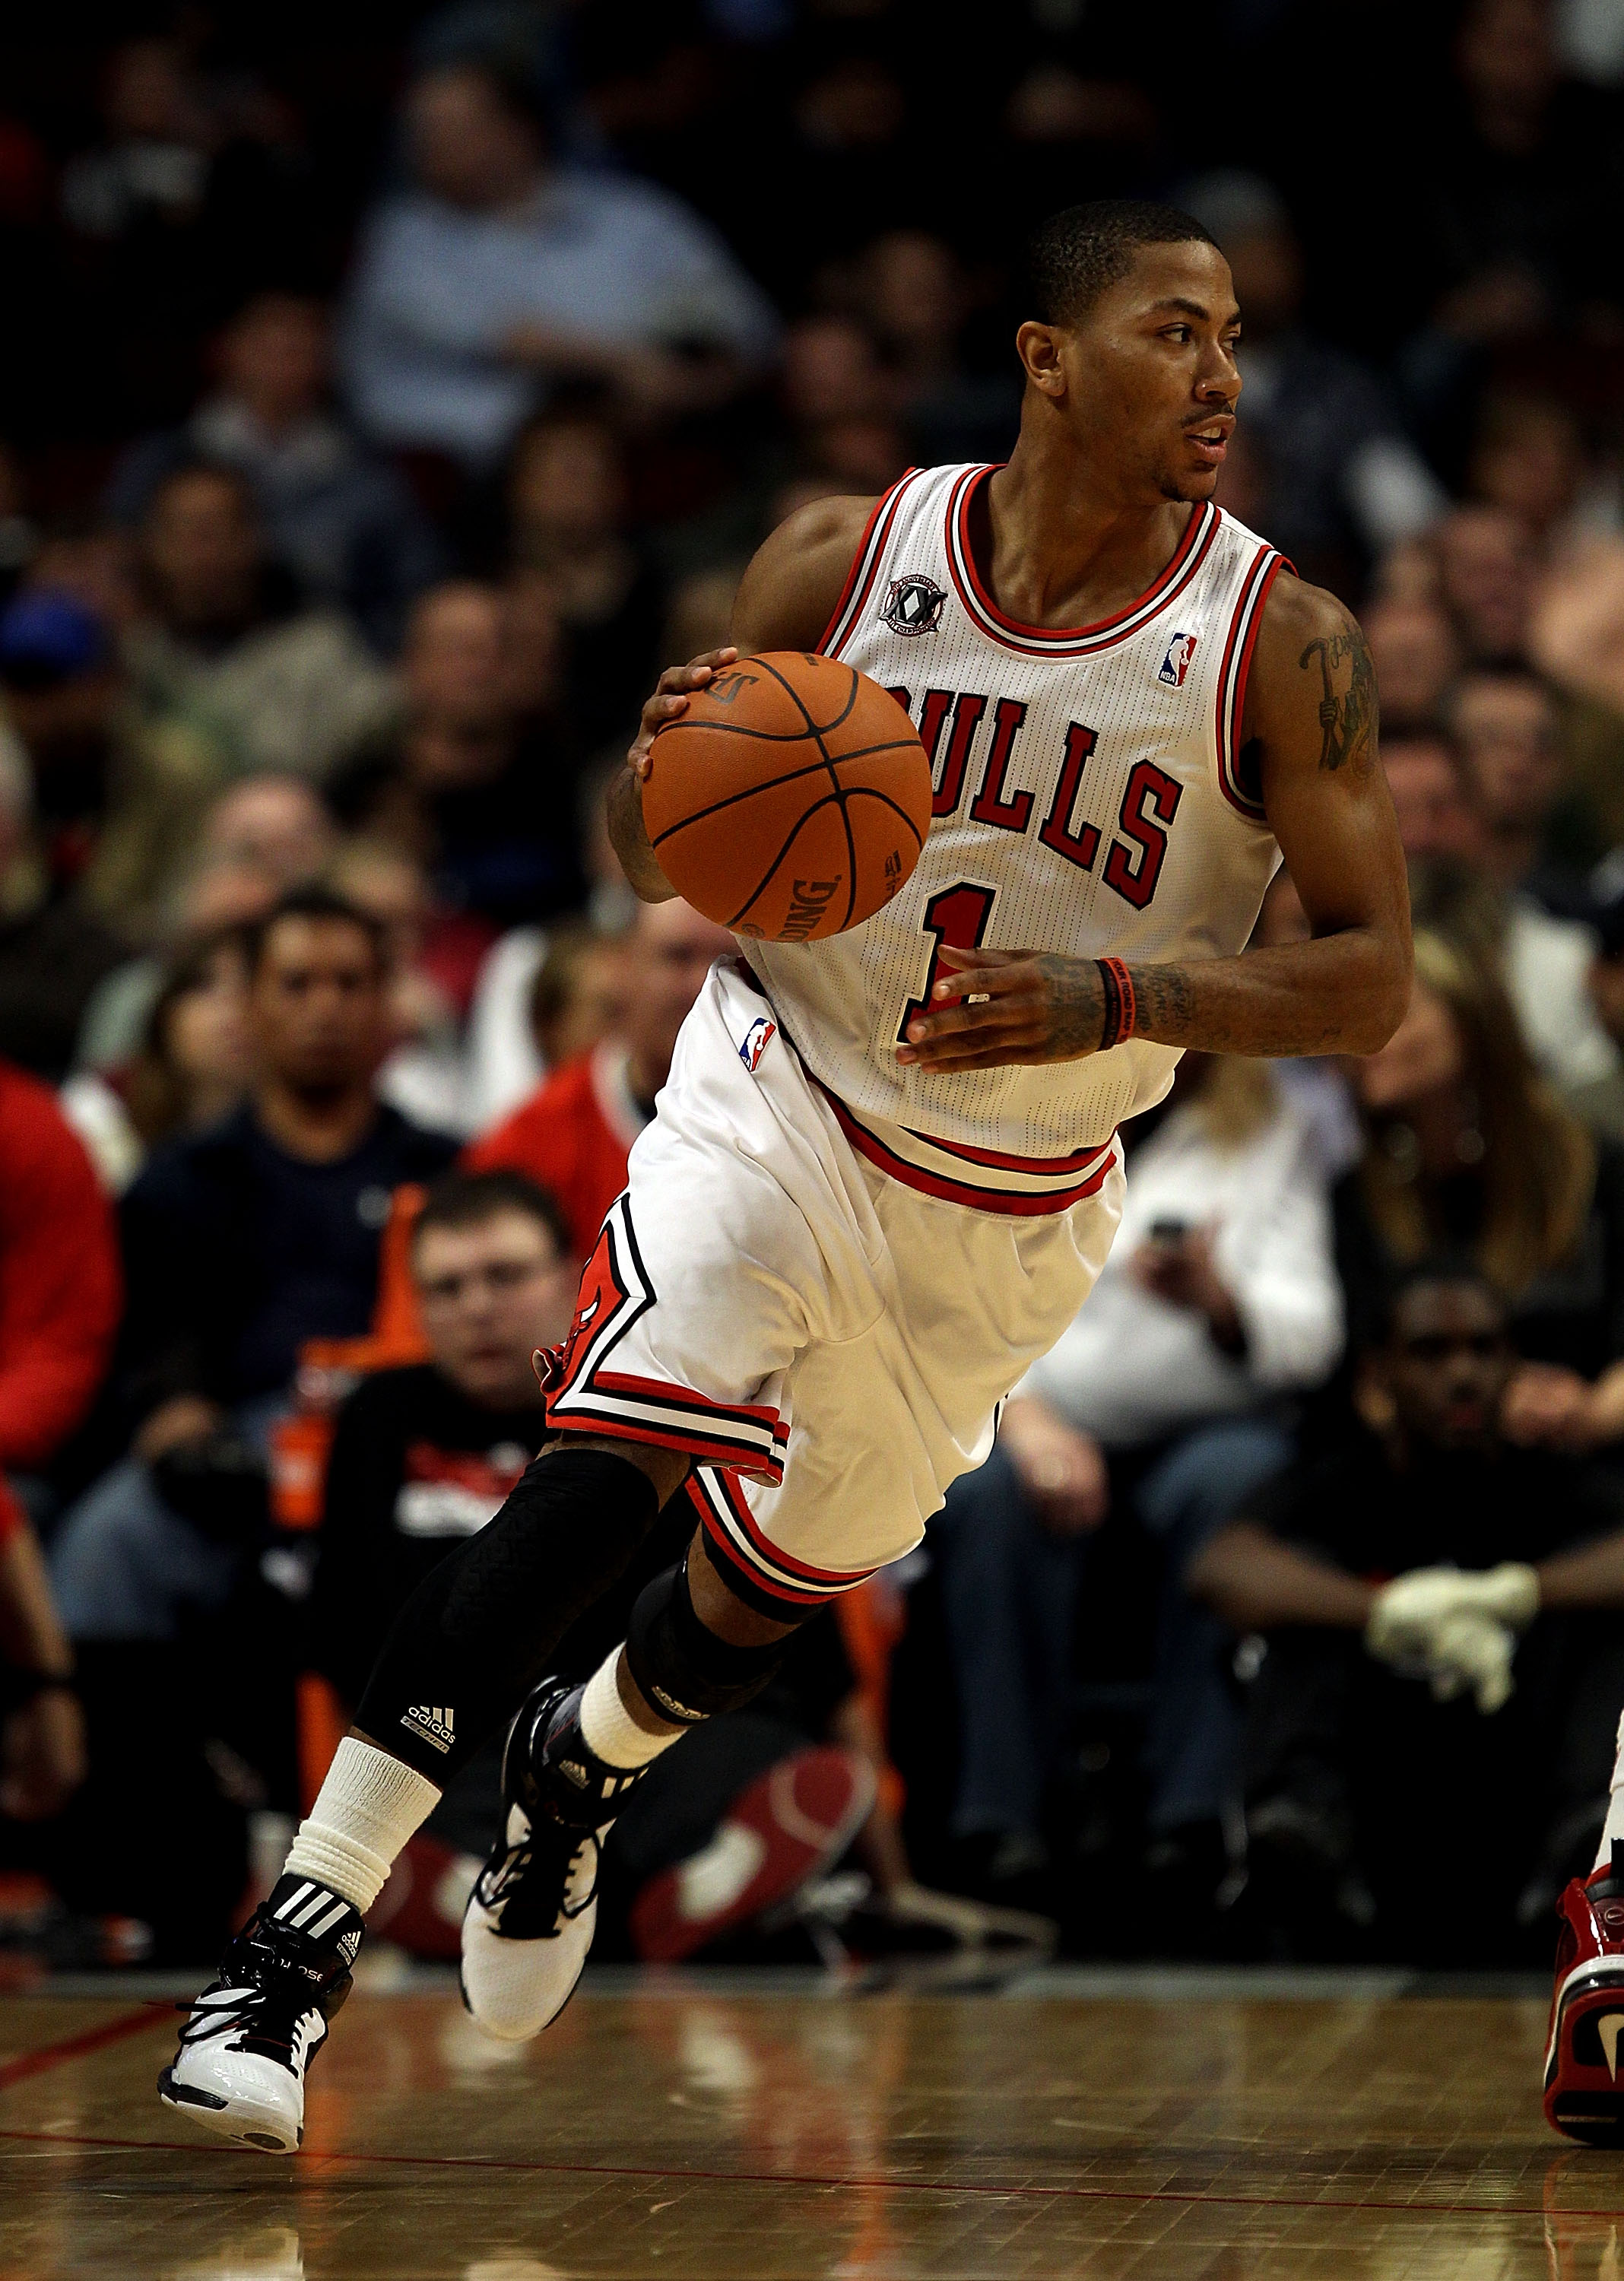 CHICAGO - NOVEMBER 04: Derrick Rose #1 of the Chicago Bulls moves against the New York Knicks at the United Center on November 4, 2010 in Chicago, Illinois. The Knicks defeated the Bulls 120-112. NOTE TO USER: User expressly acknowledges and agrees that,